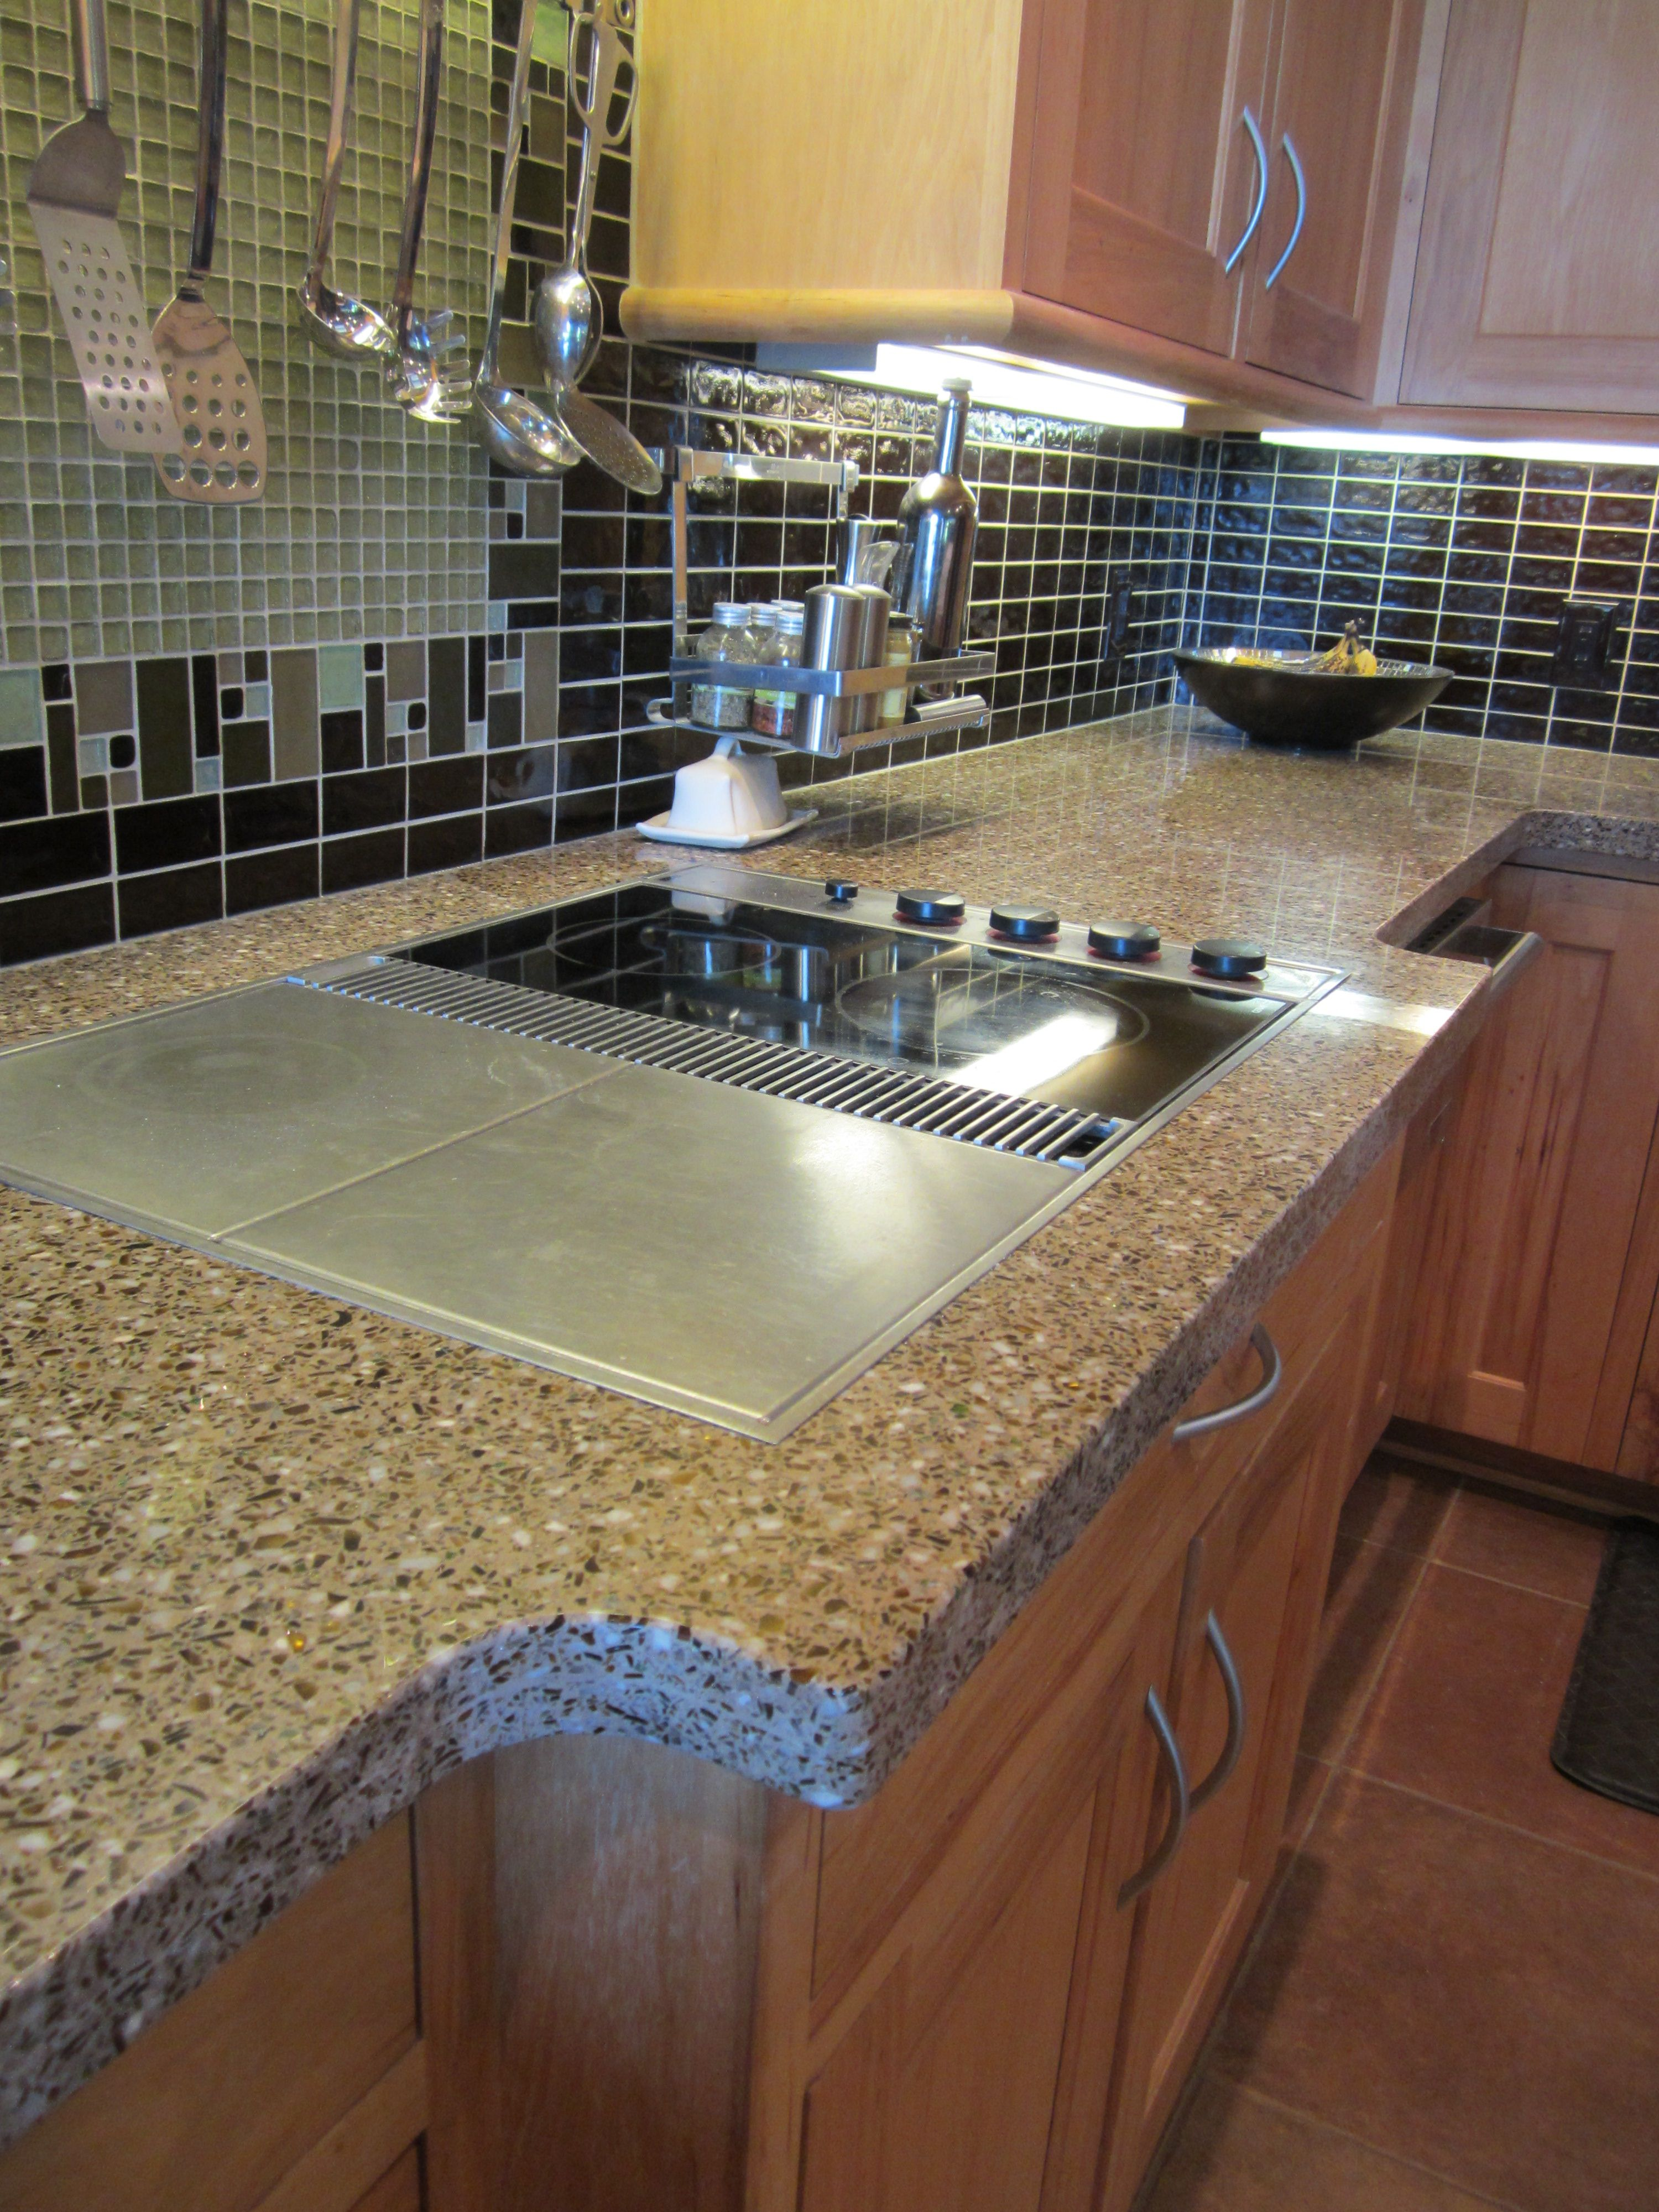 The Homeowner Chose Their Combination Of Glass And Background Color To Be Applied In Their Beau Recycled Glass Countertops Glass Countertops Beautiful Kitchens